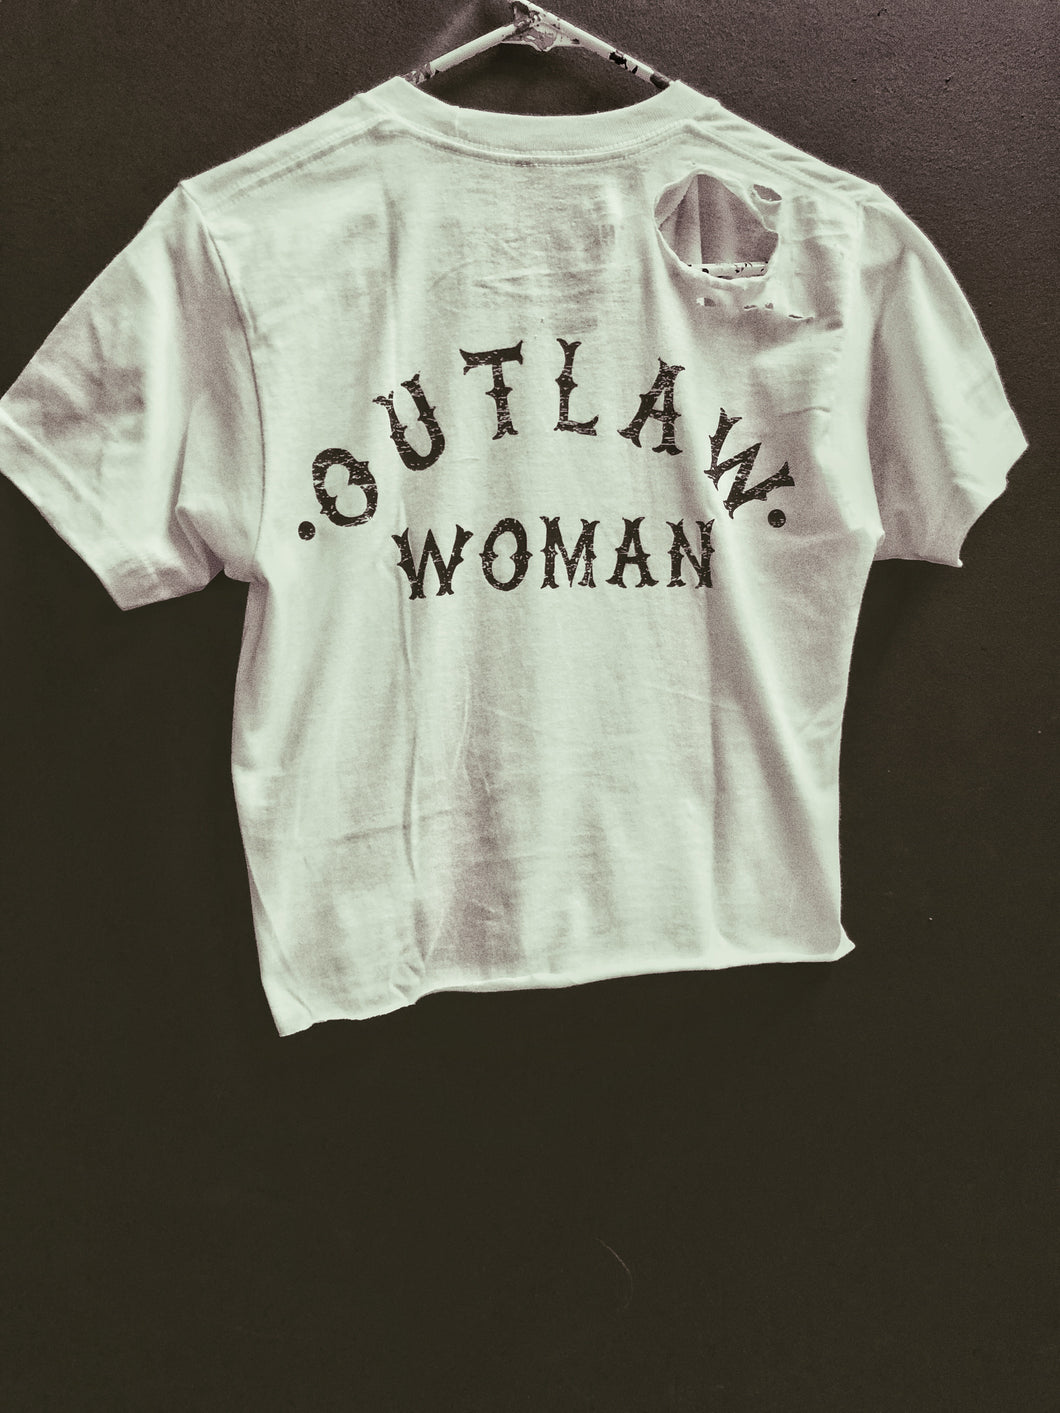 52- Outlaw Woman Crop Top